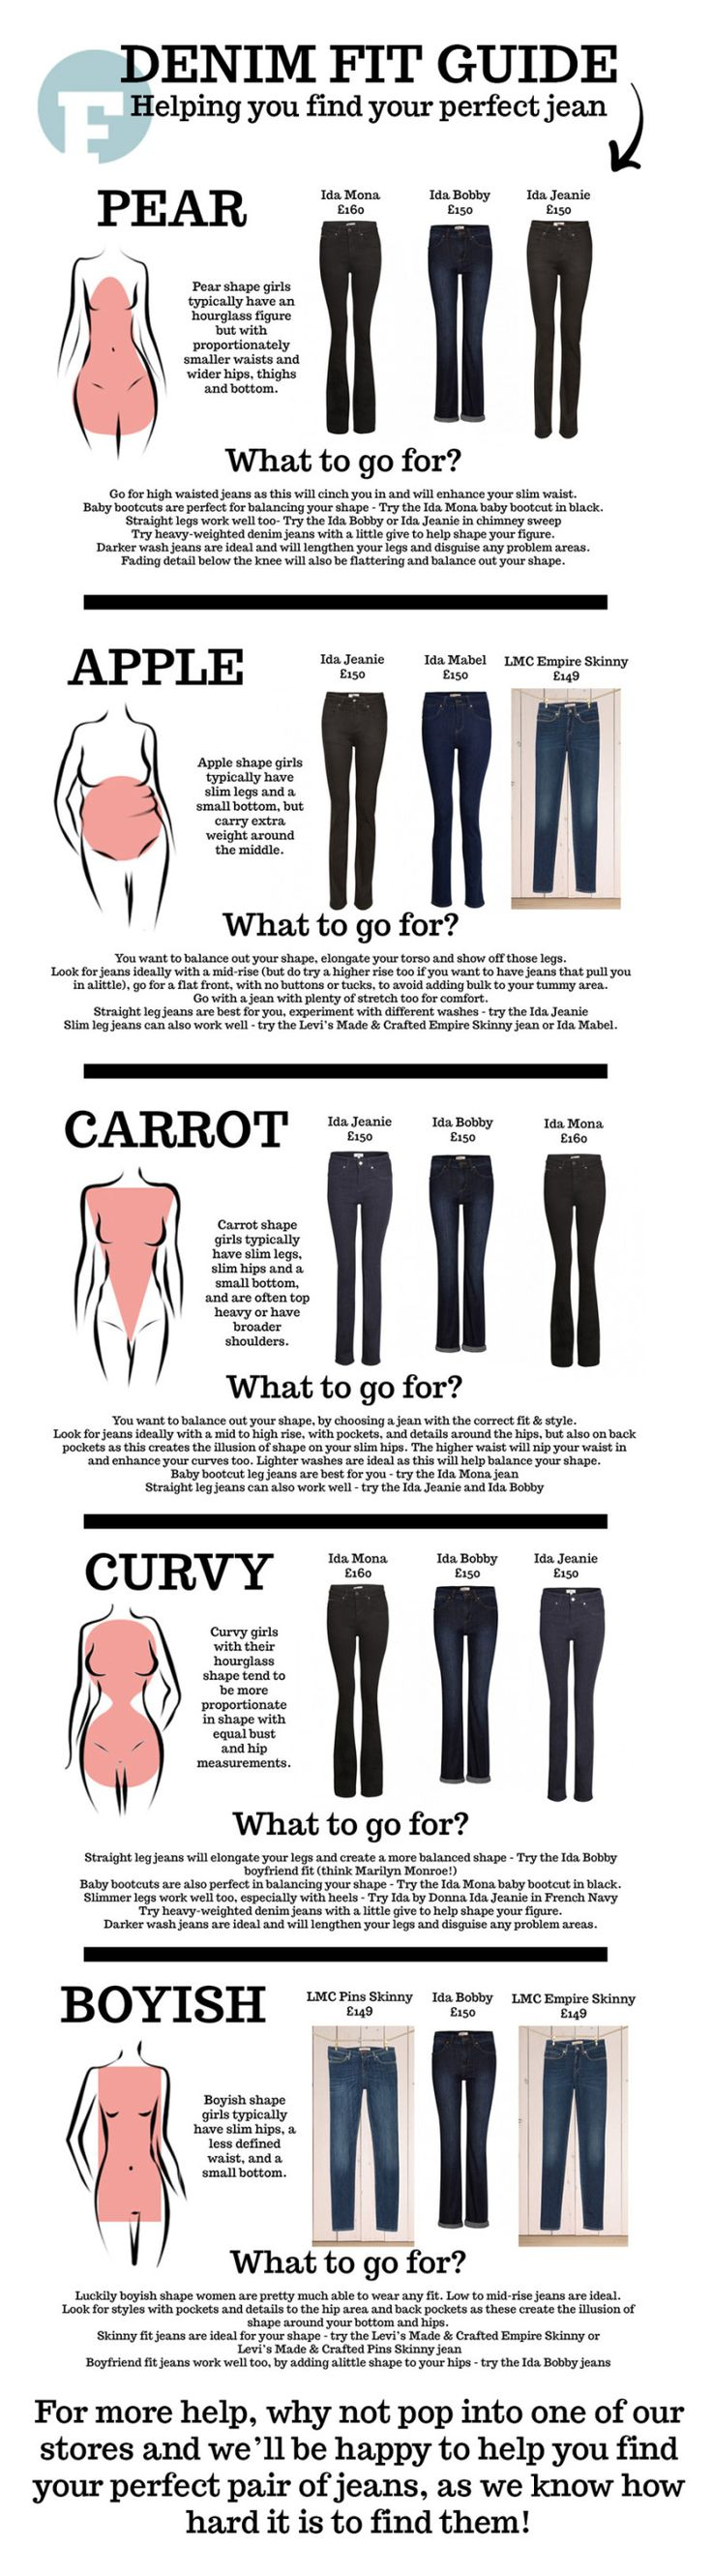 Our denim fit guide for autumn winter 2013, find your perfect jeans with a little help from us!